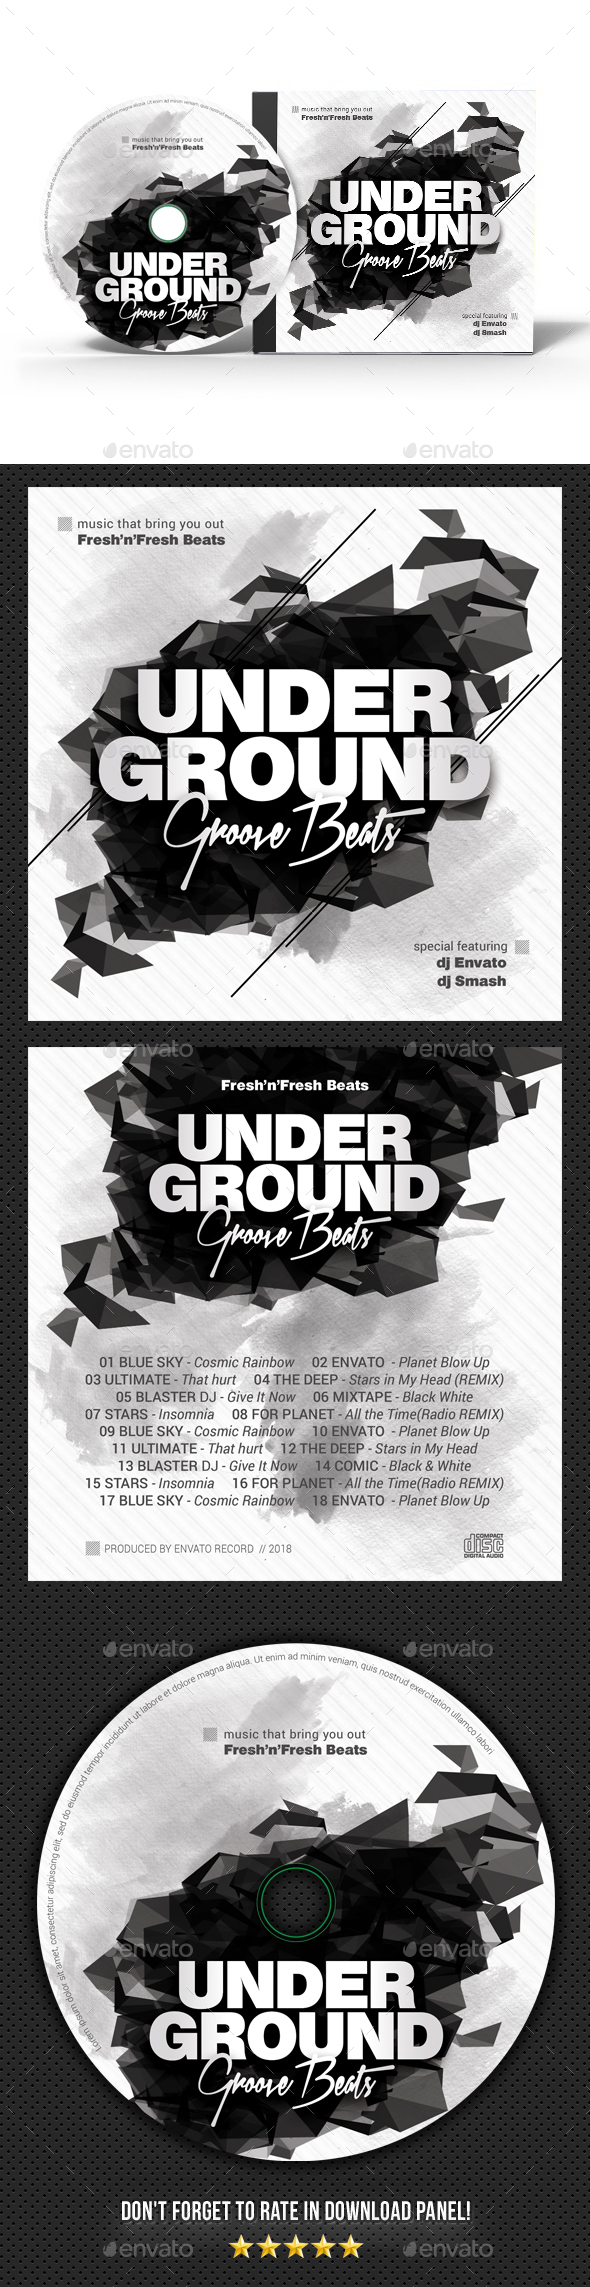 Underground Groove CD Cover - CD & DVD Artwork Print Templates